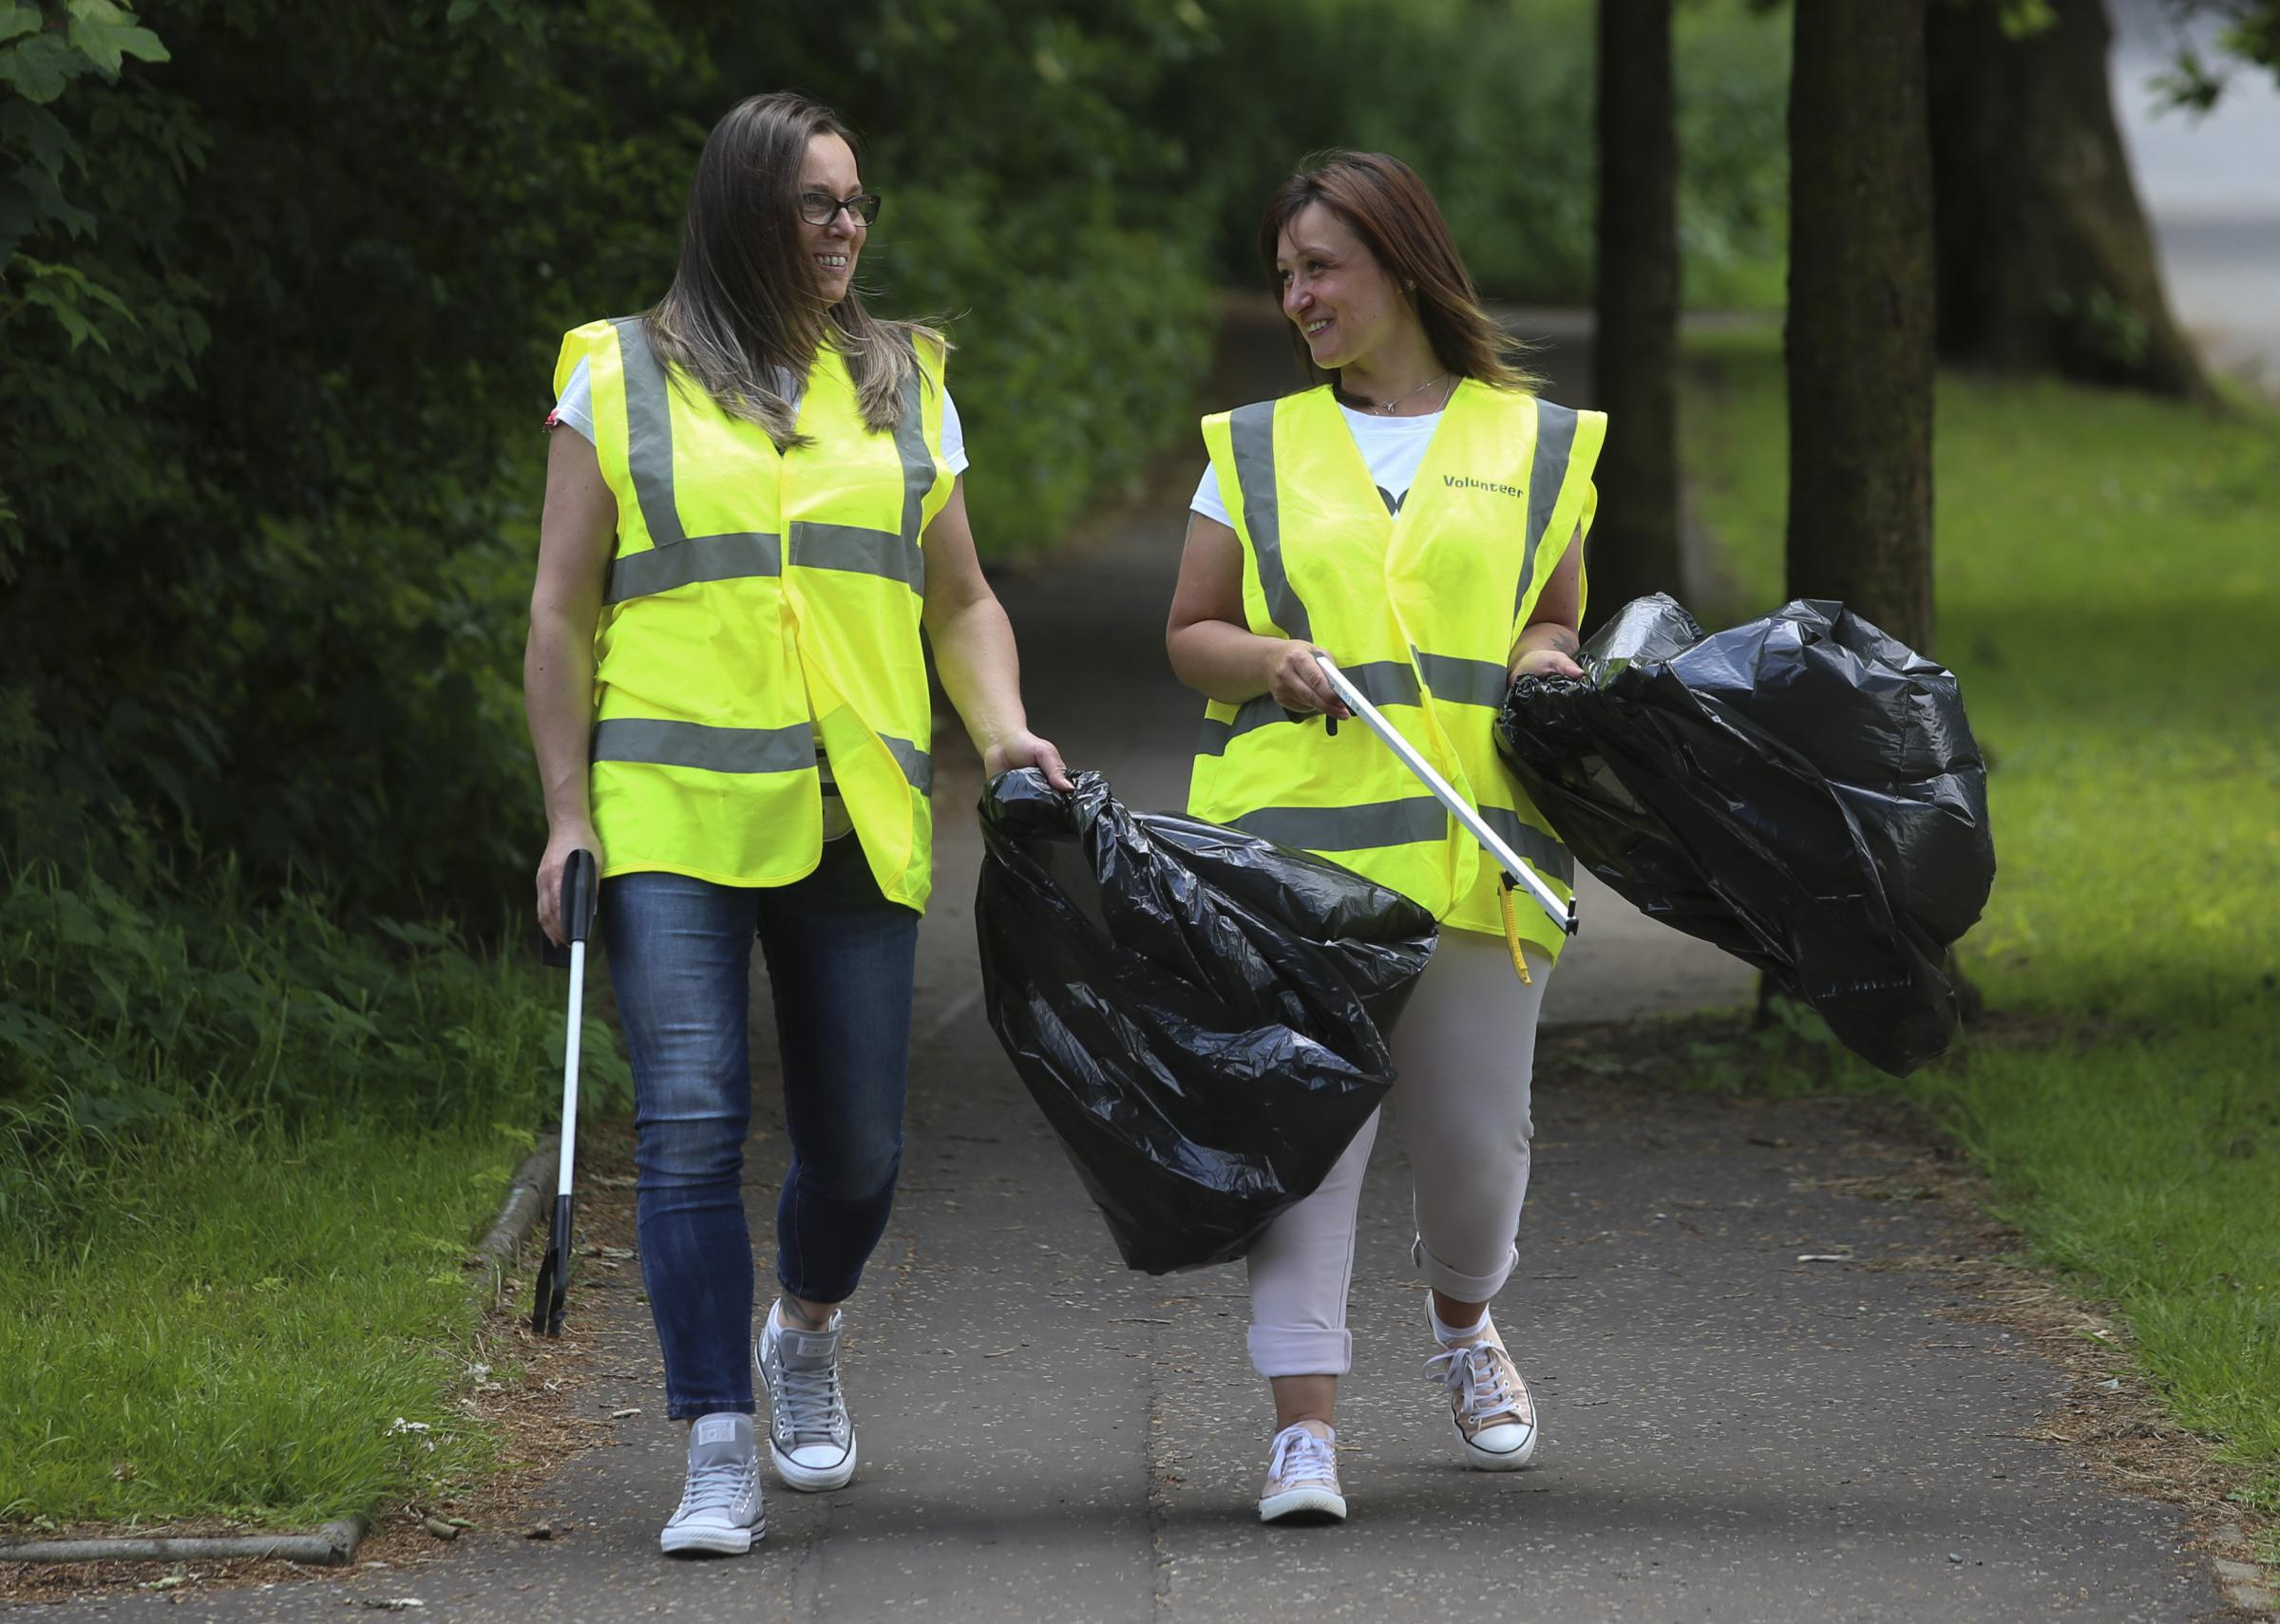 Glasgow woman wins city green award for cleaning up Castlemilk